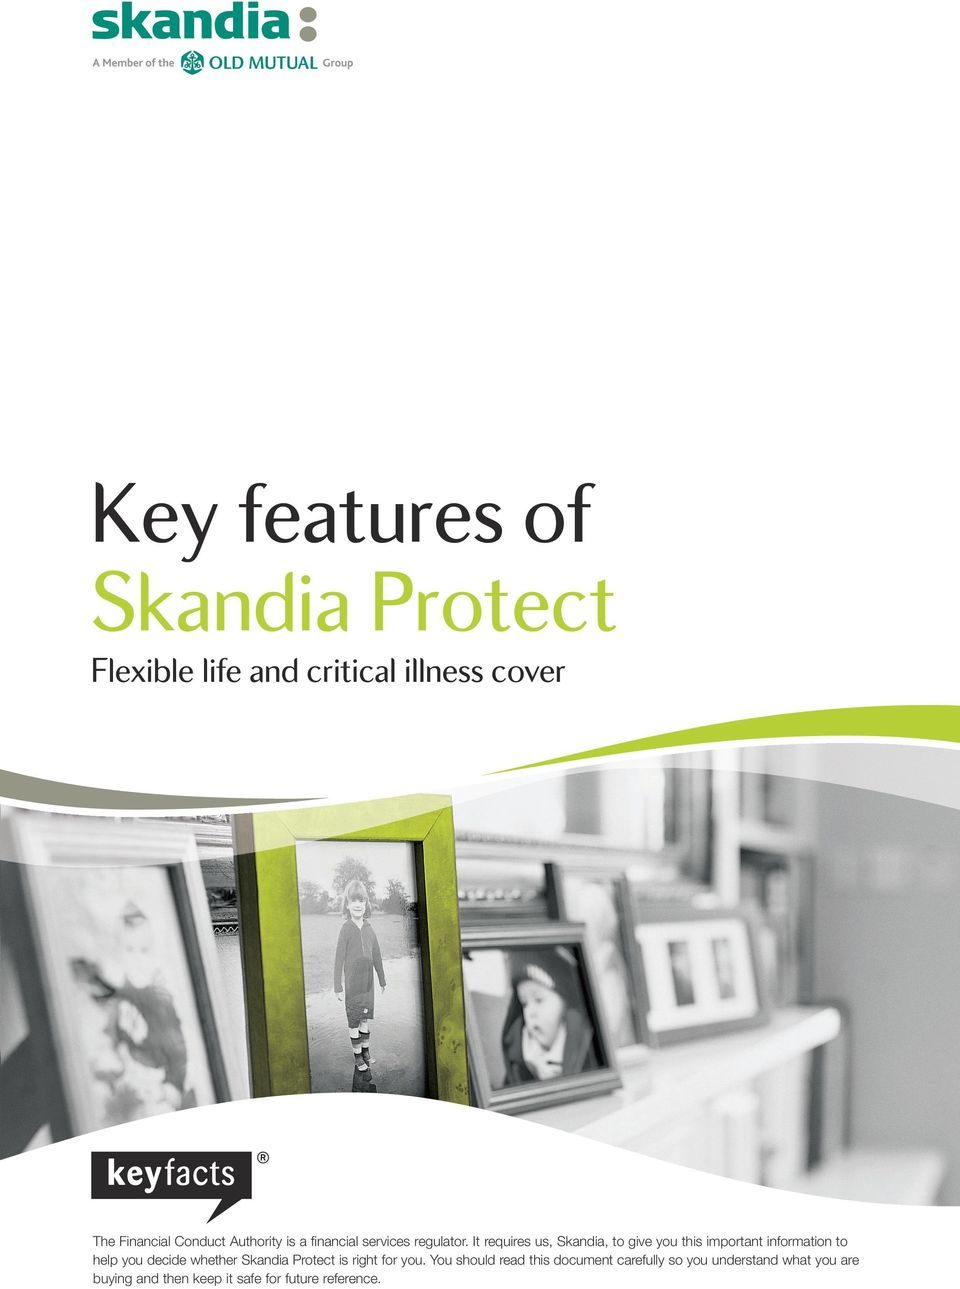 It requires us, Skandia, to give you this important information to help you decide whether